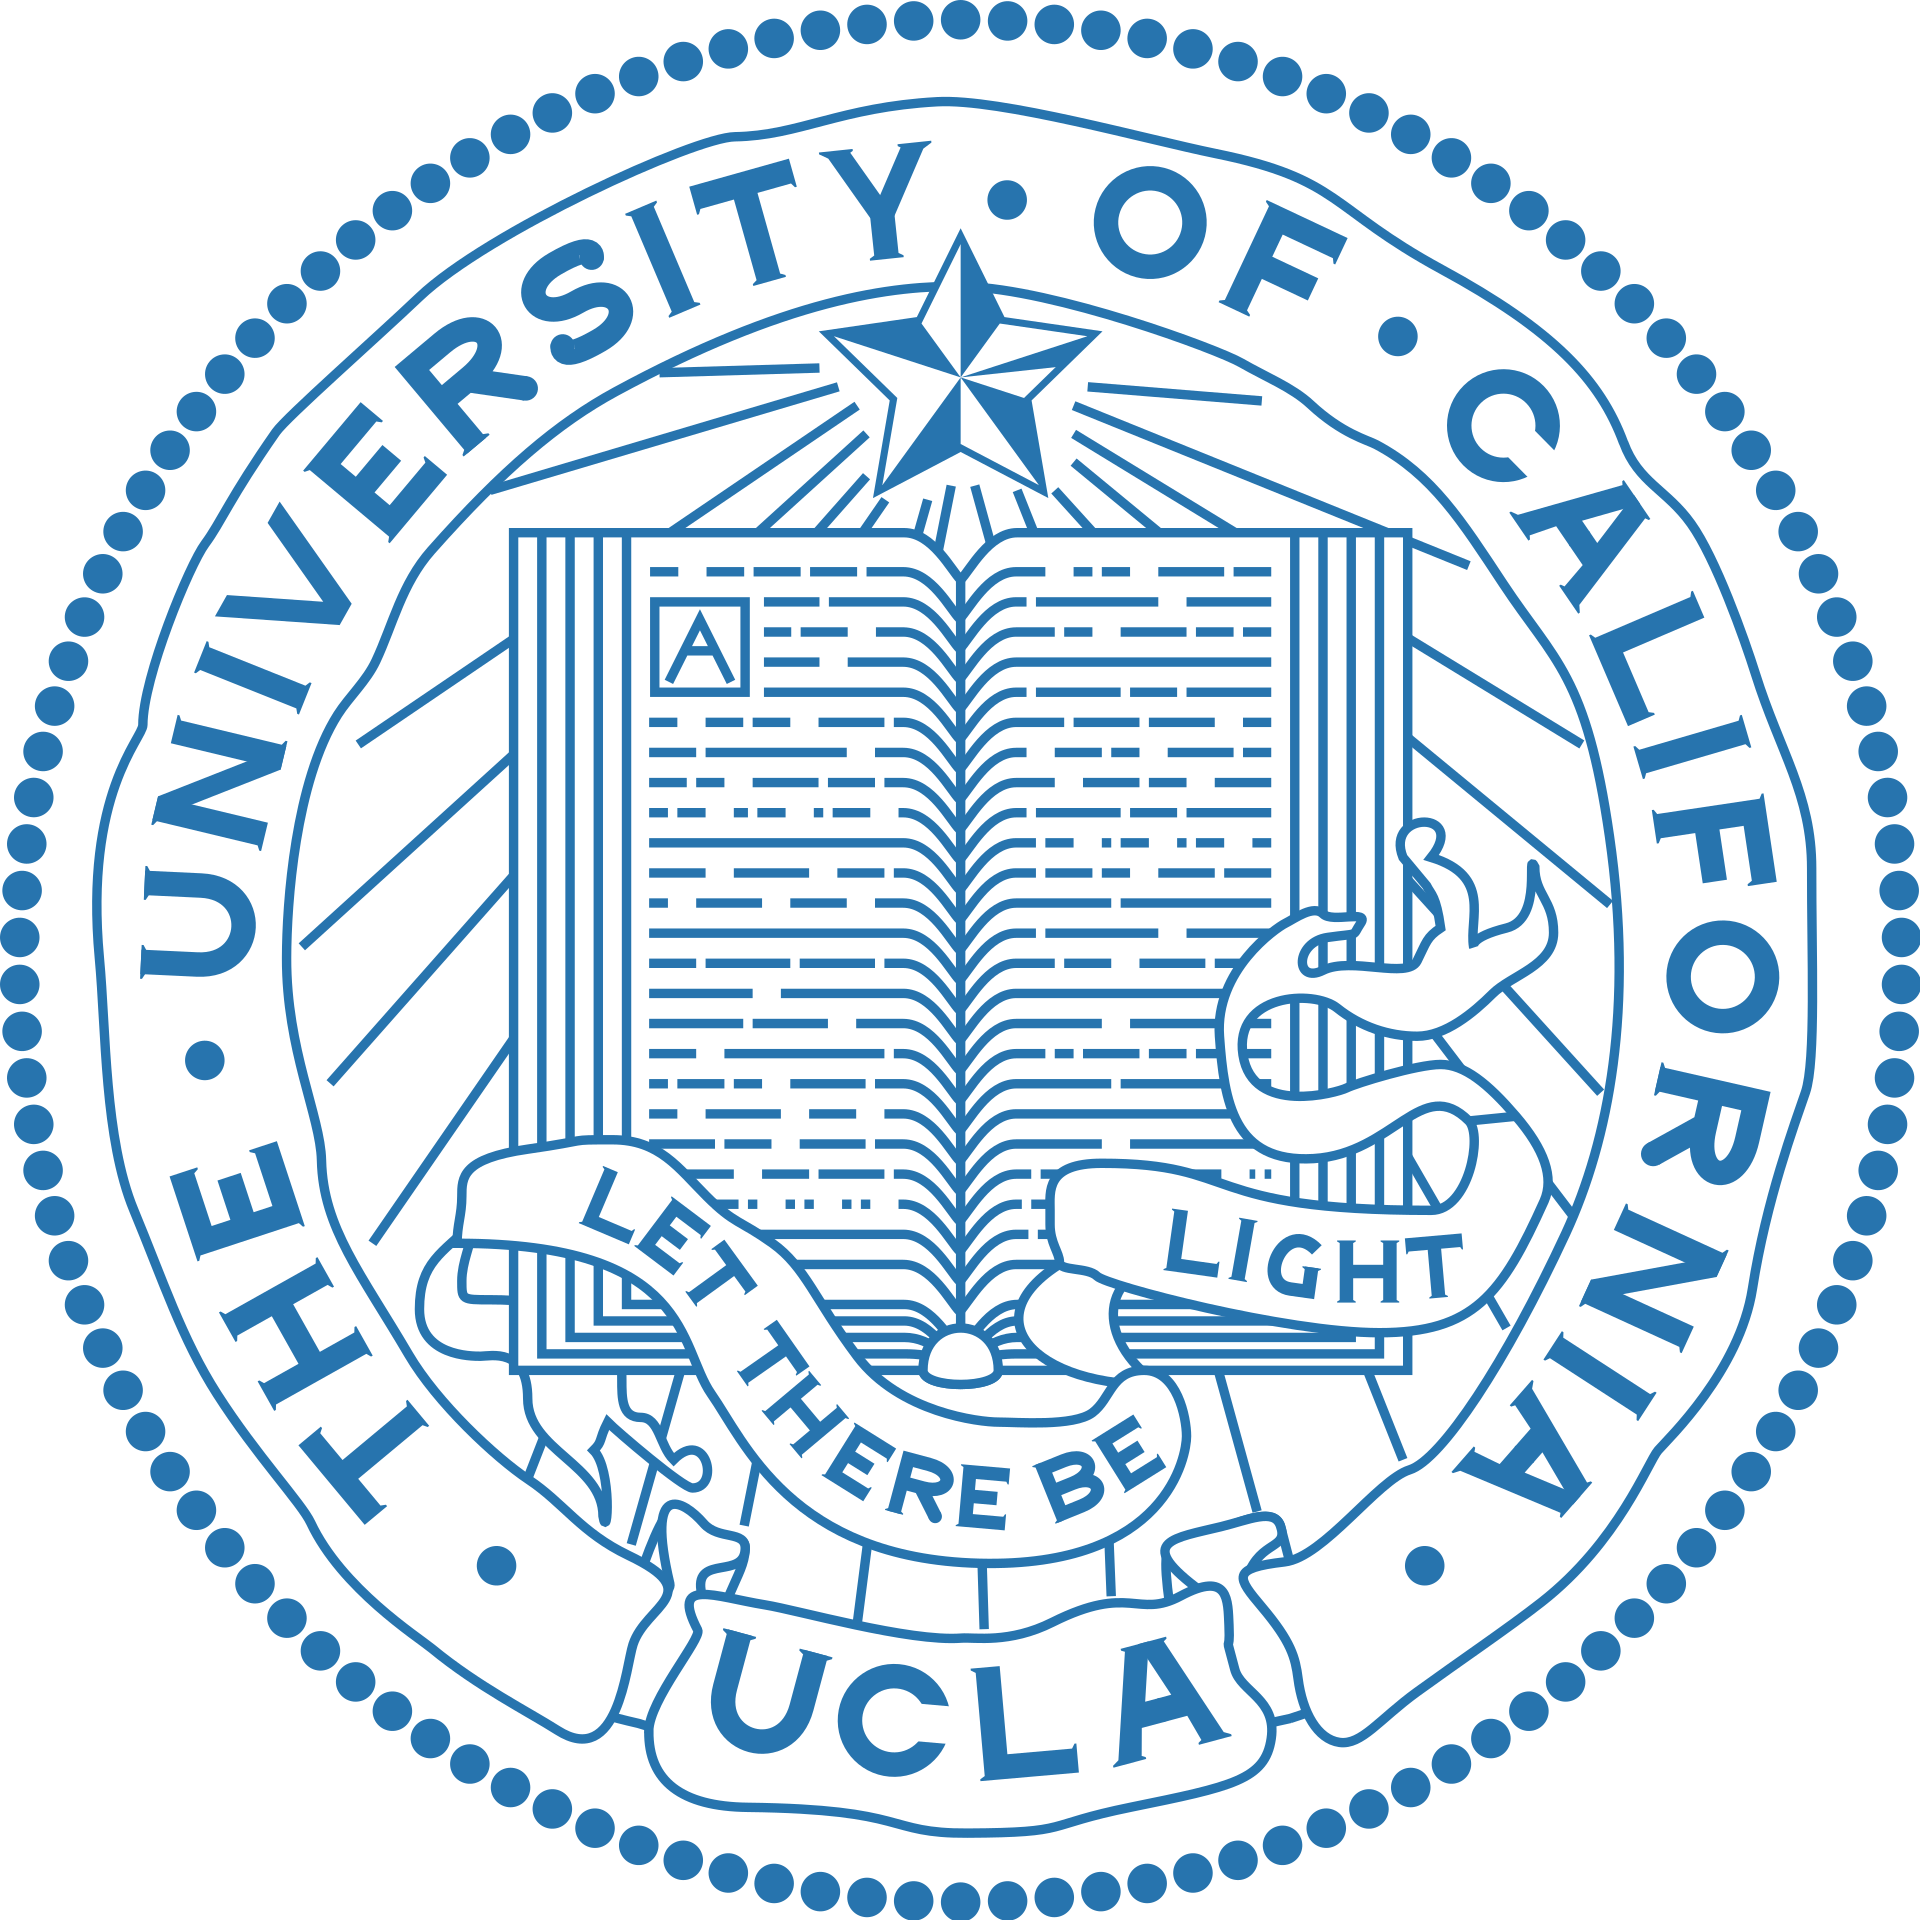 加州大学洛杉矶分校UCLA雅思要求University of California, Los Angeles详解